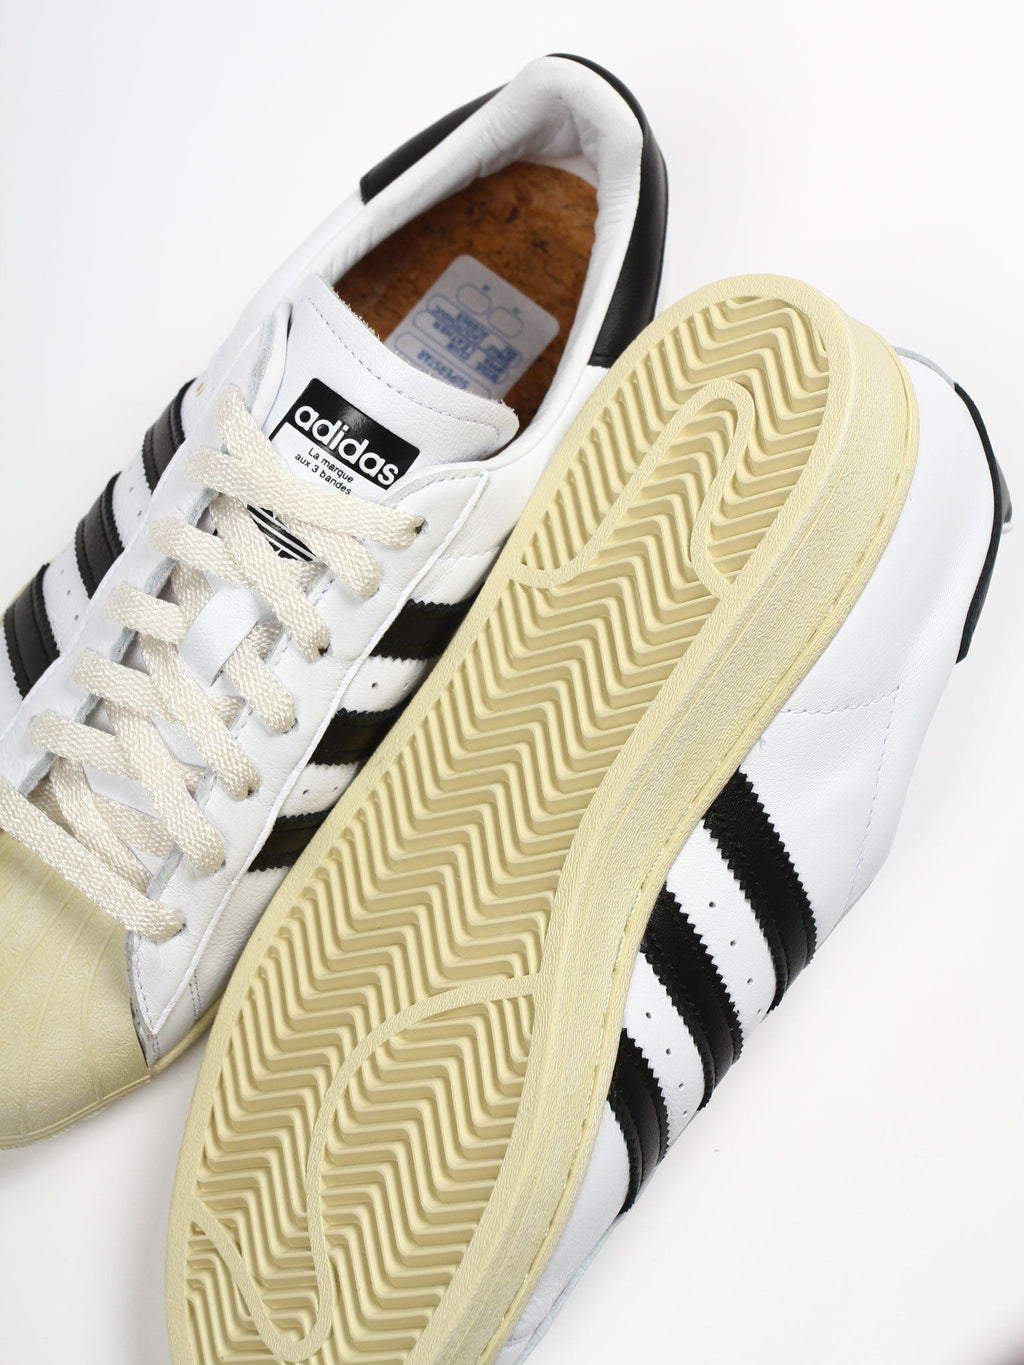 White & Black Superstar Sneakers